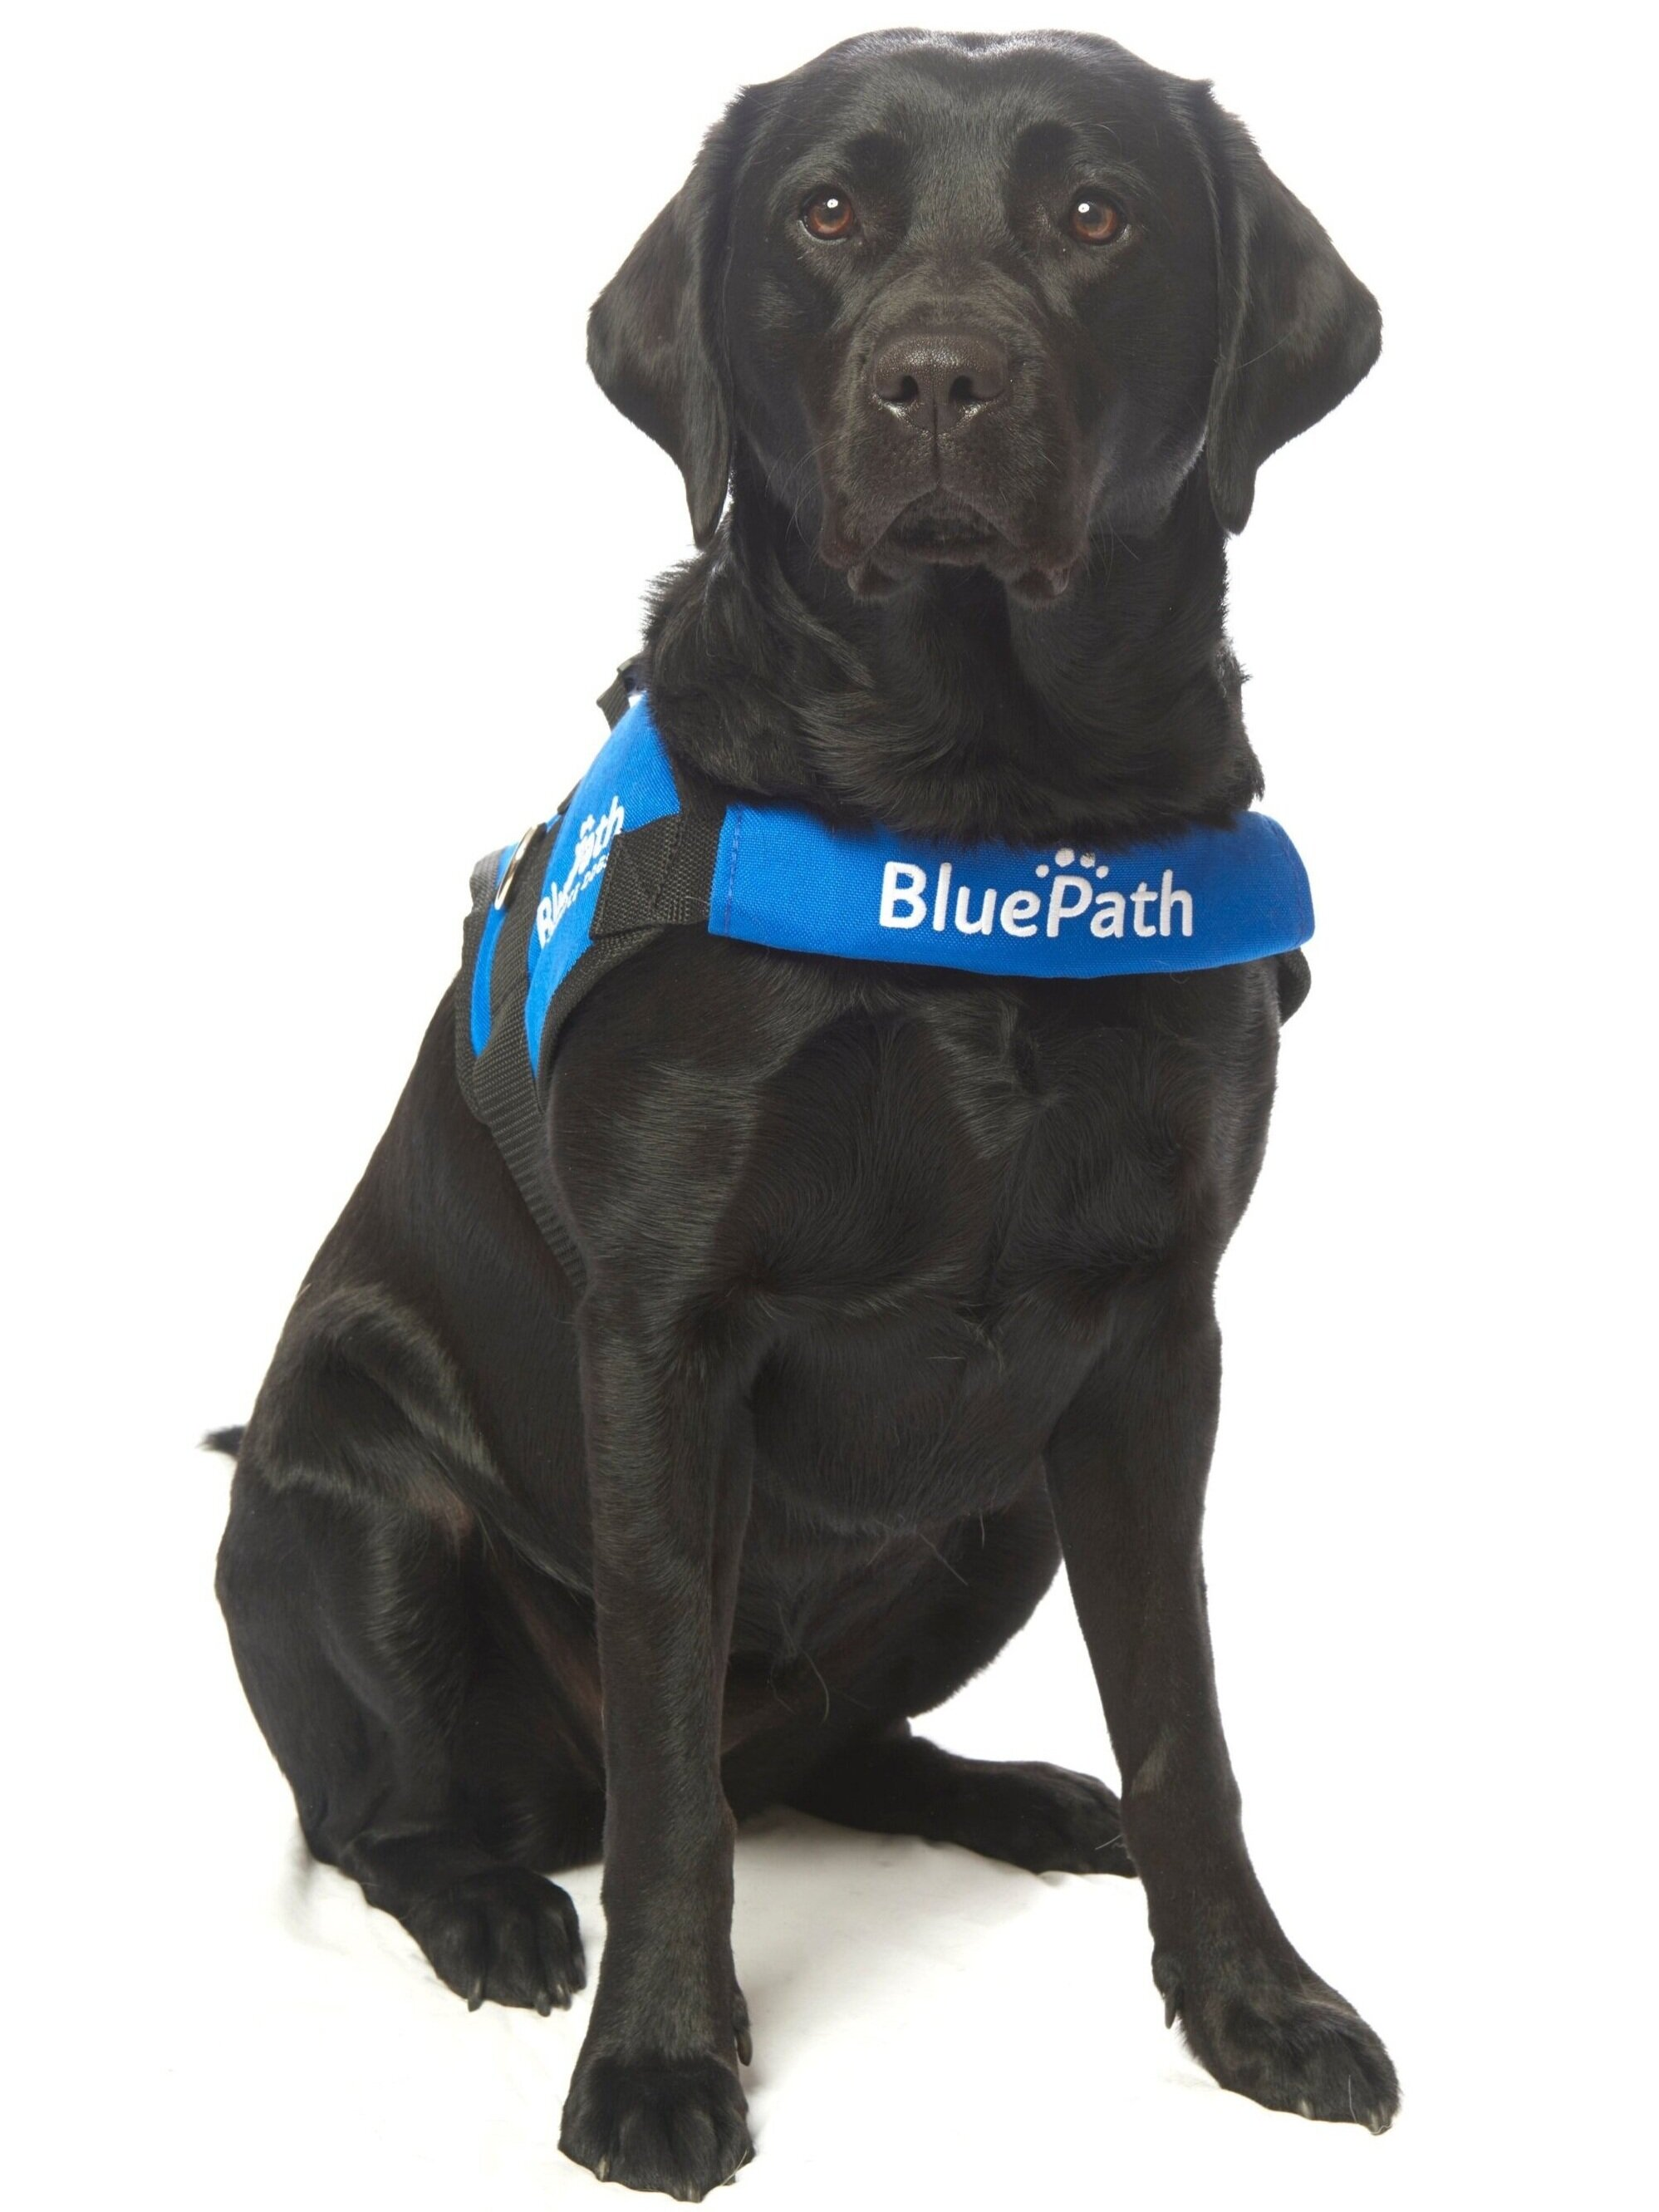 BluePath Chelsea   Graduated with the Collins family  Raised by Sue and Rebecca Reznak  Fostered by Jim Brown and Marianne Devine  Provided by Southeastern Guide Dogs